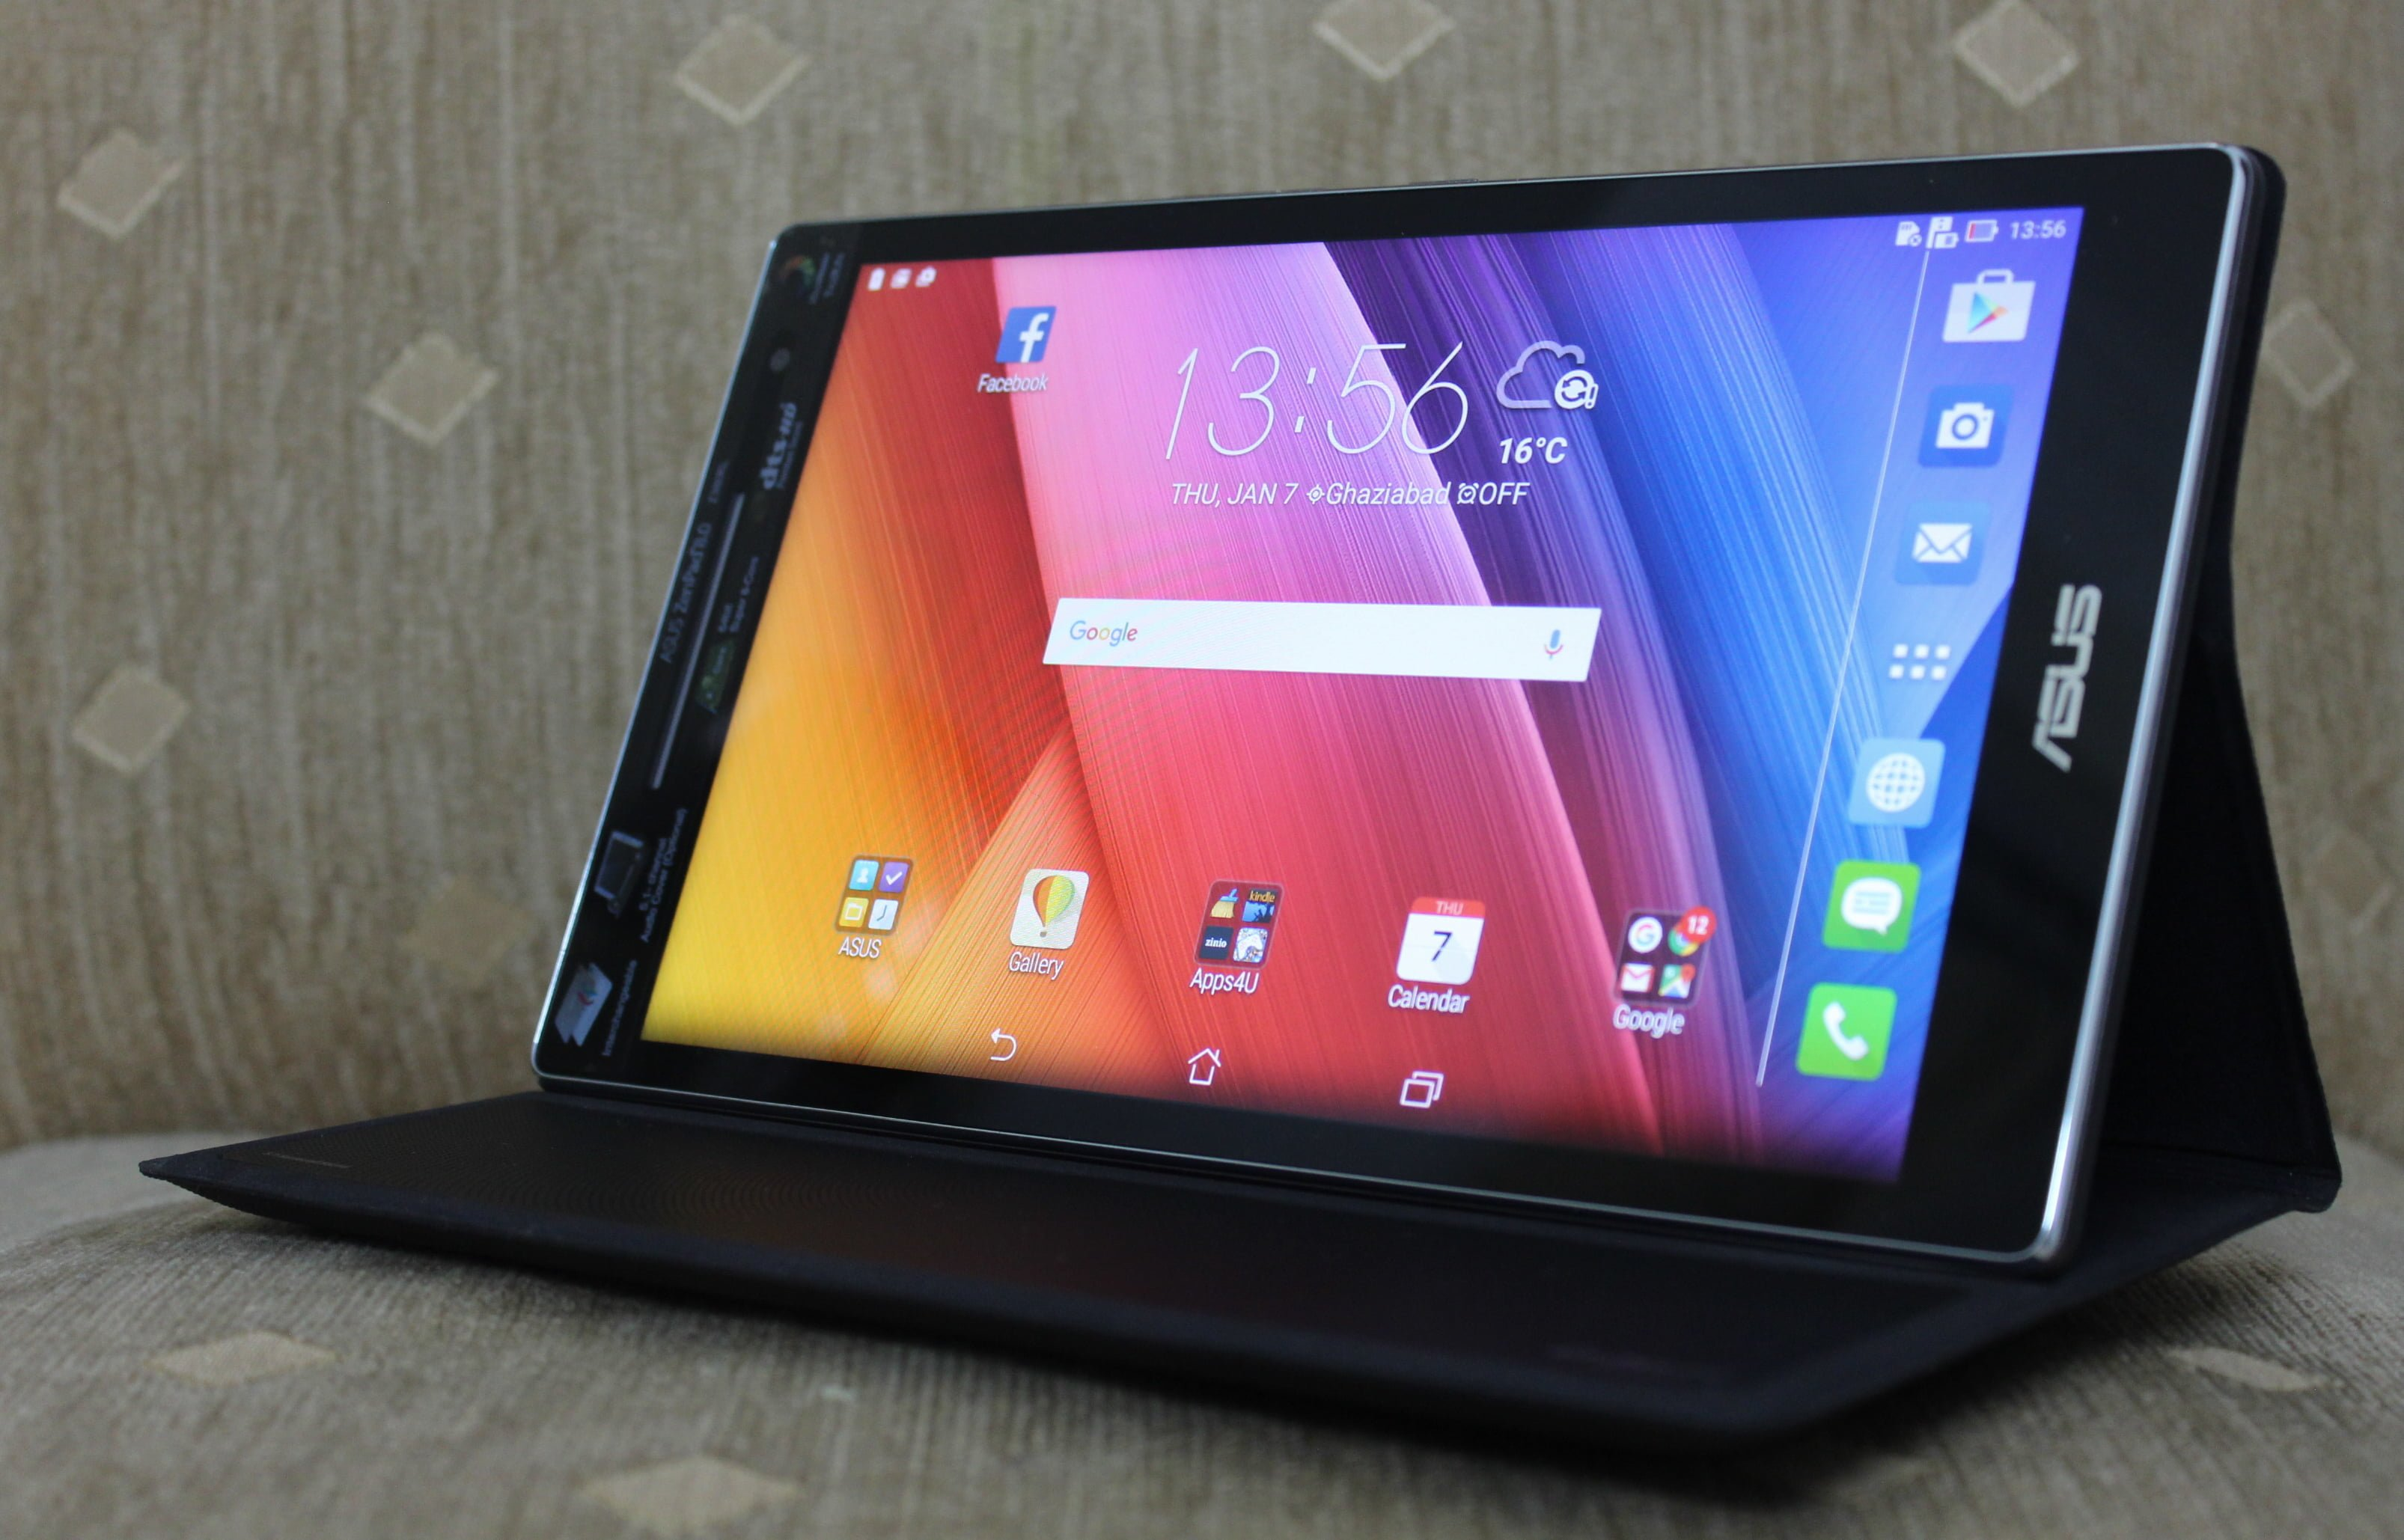 asus 8.0 zenpad latest